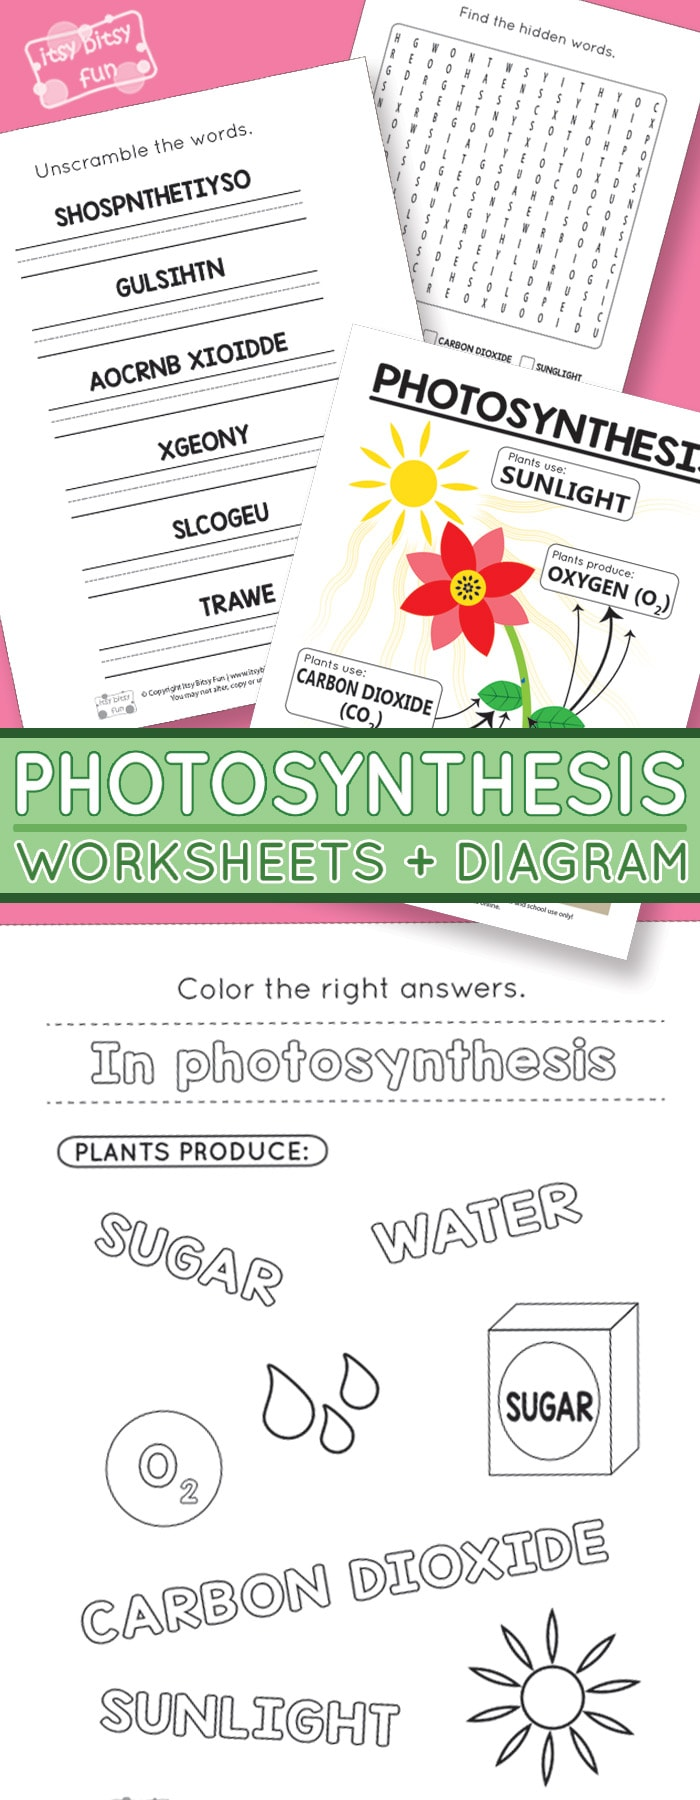 Photosynthesis Worksheets for Kids - Itsy Bitsy Fun